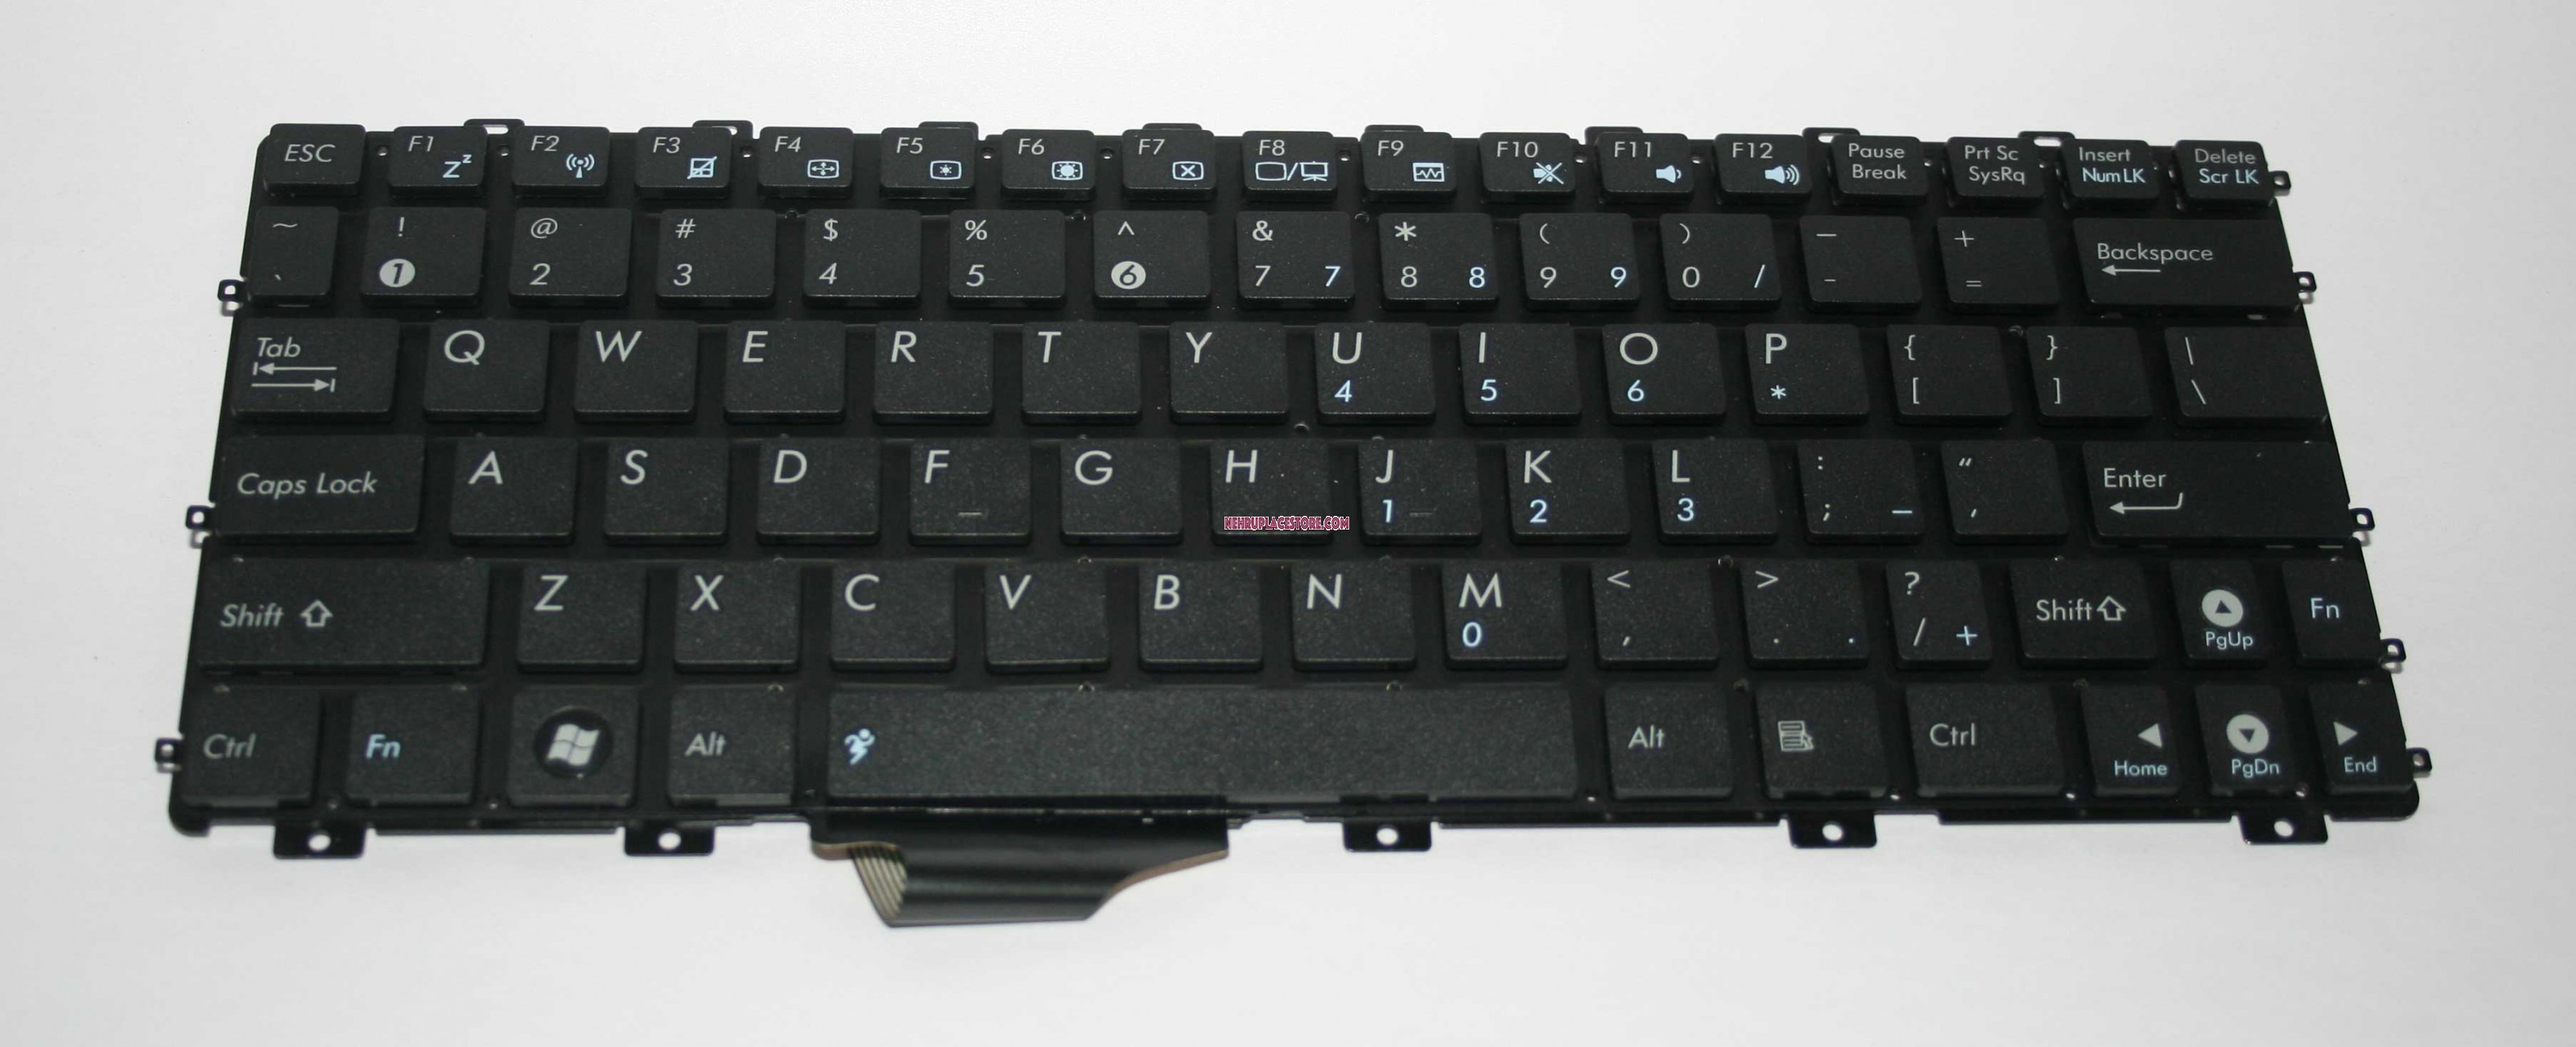 Asus Mini Eee Pc 1015 1015ped 1015pw 1015t Keyboard